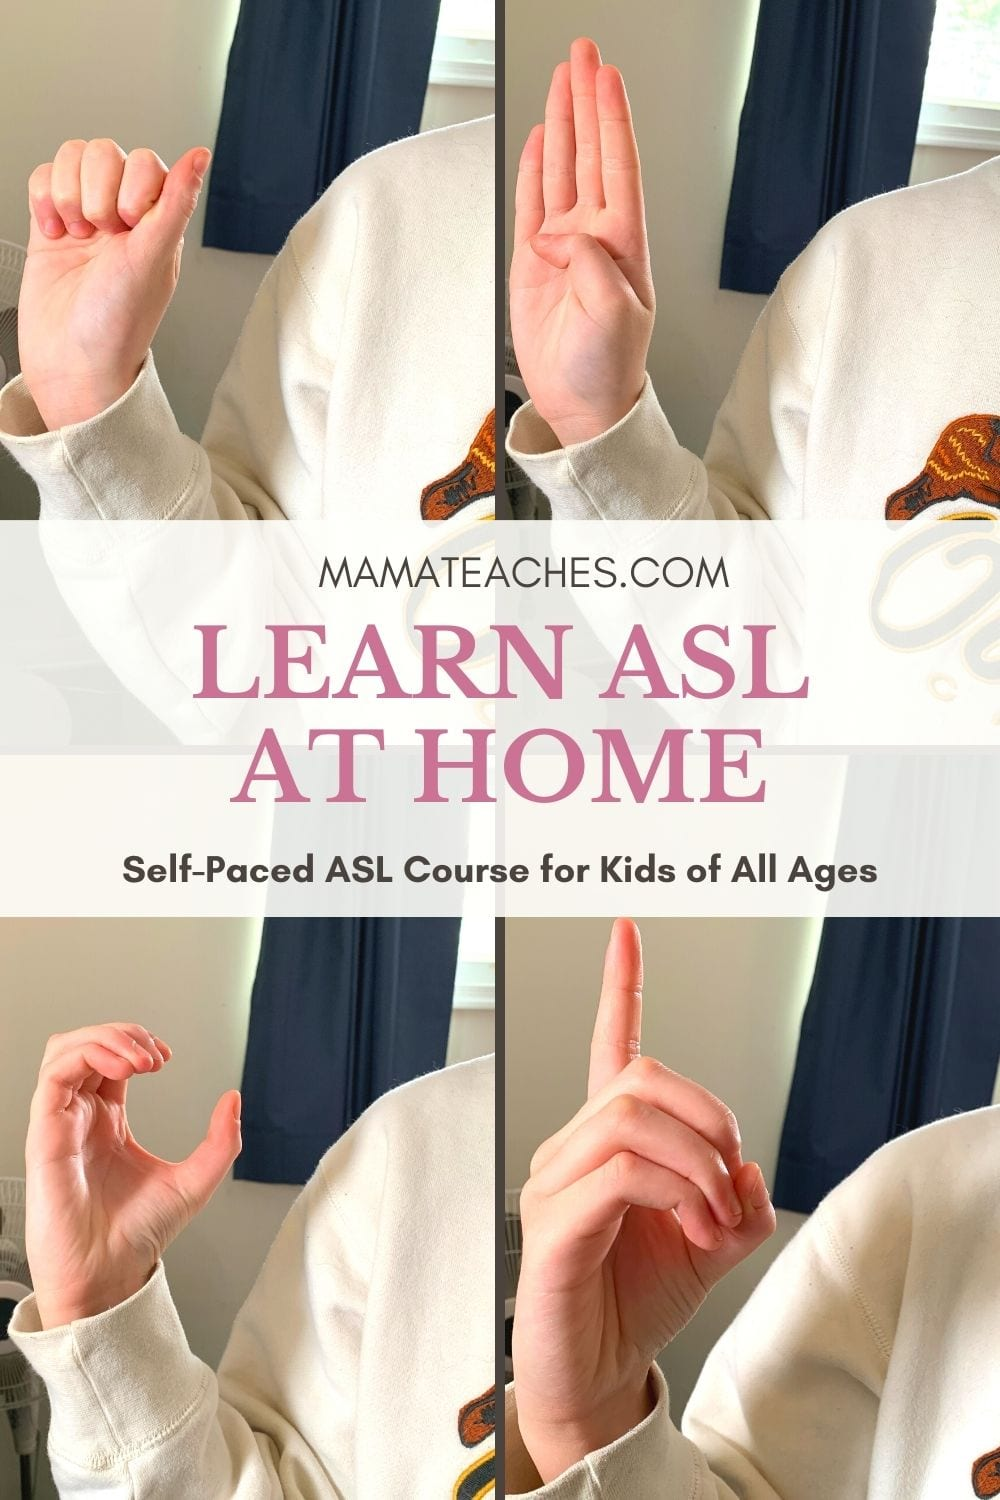 Learn ASL at Home with This Self-Paced Course